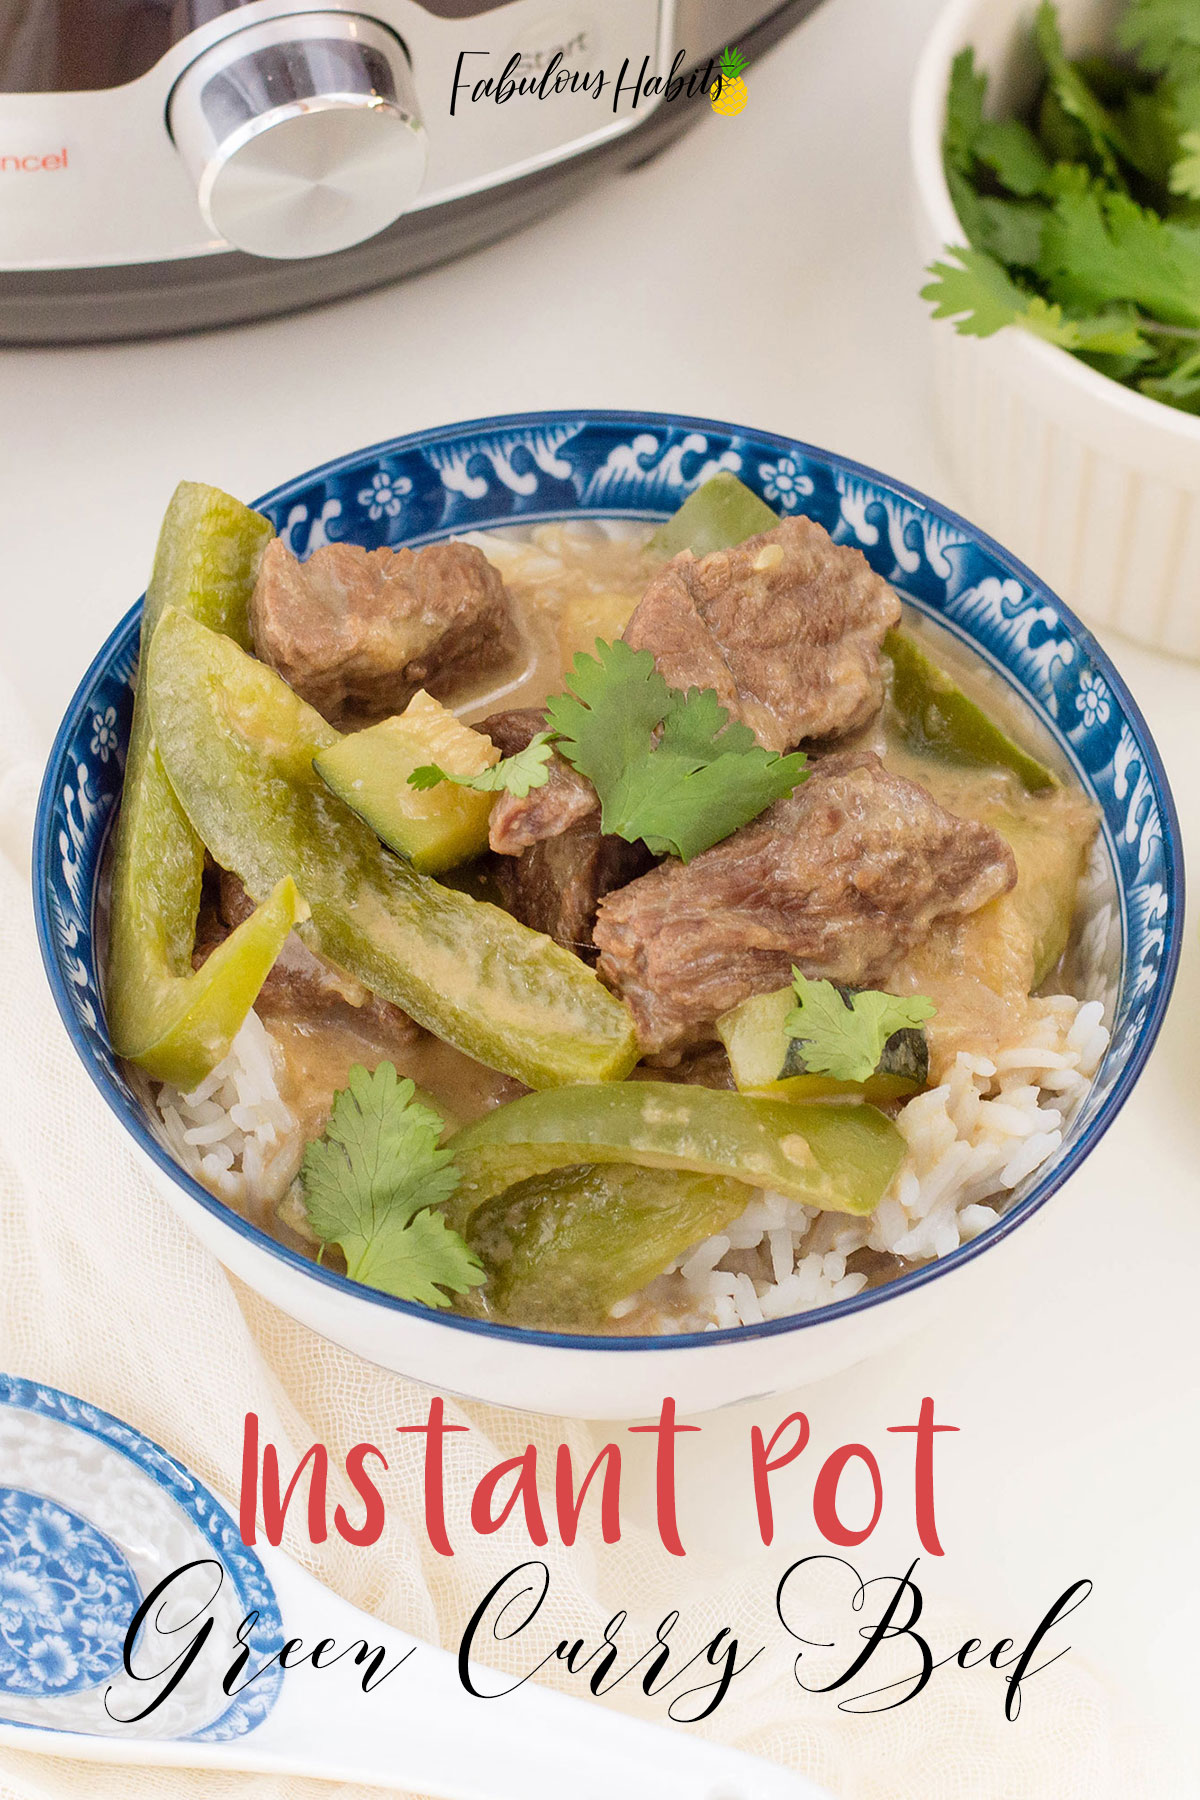 Craving something a little more on the exotic side? This recipe for Thai Green Curry Beef is absolutely delicious and it's SO easy to make in the Instant Pot! #easyinstantpotrecipes